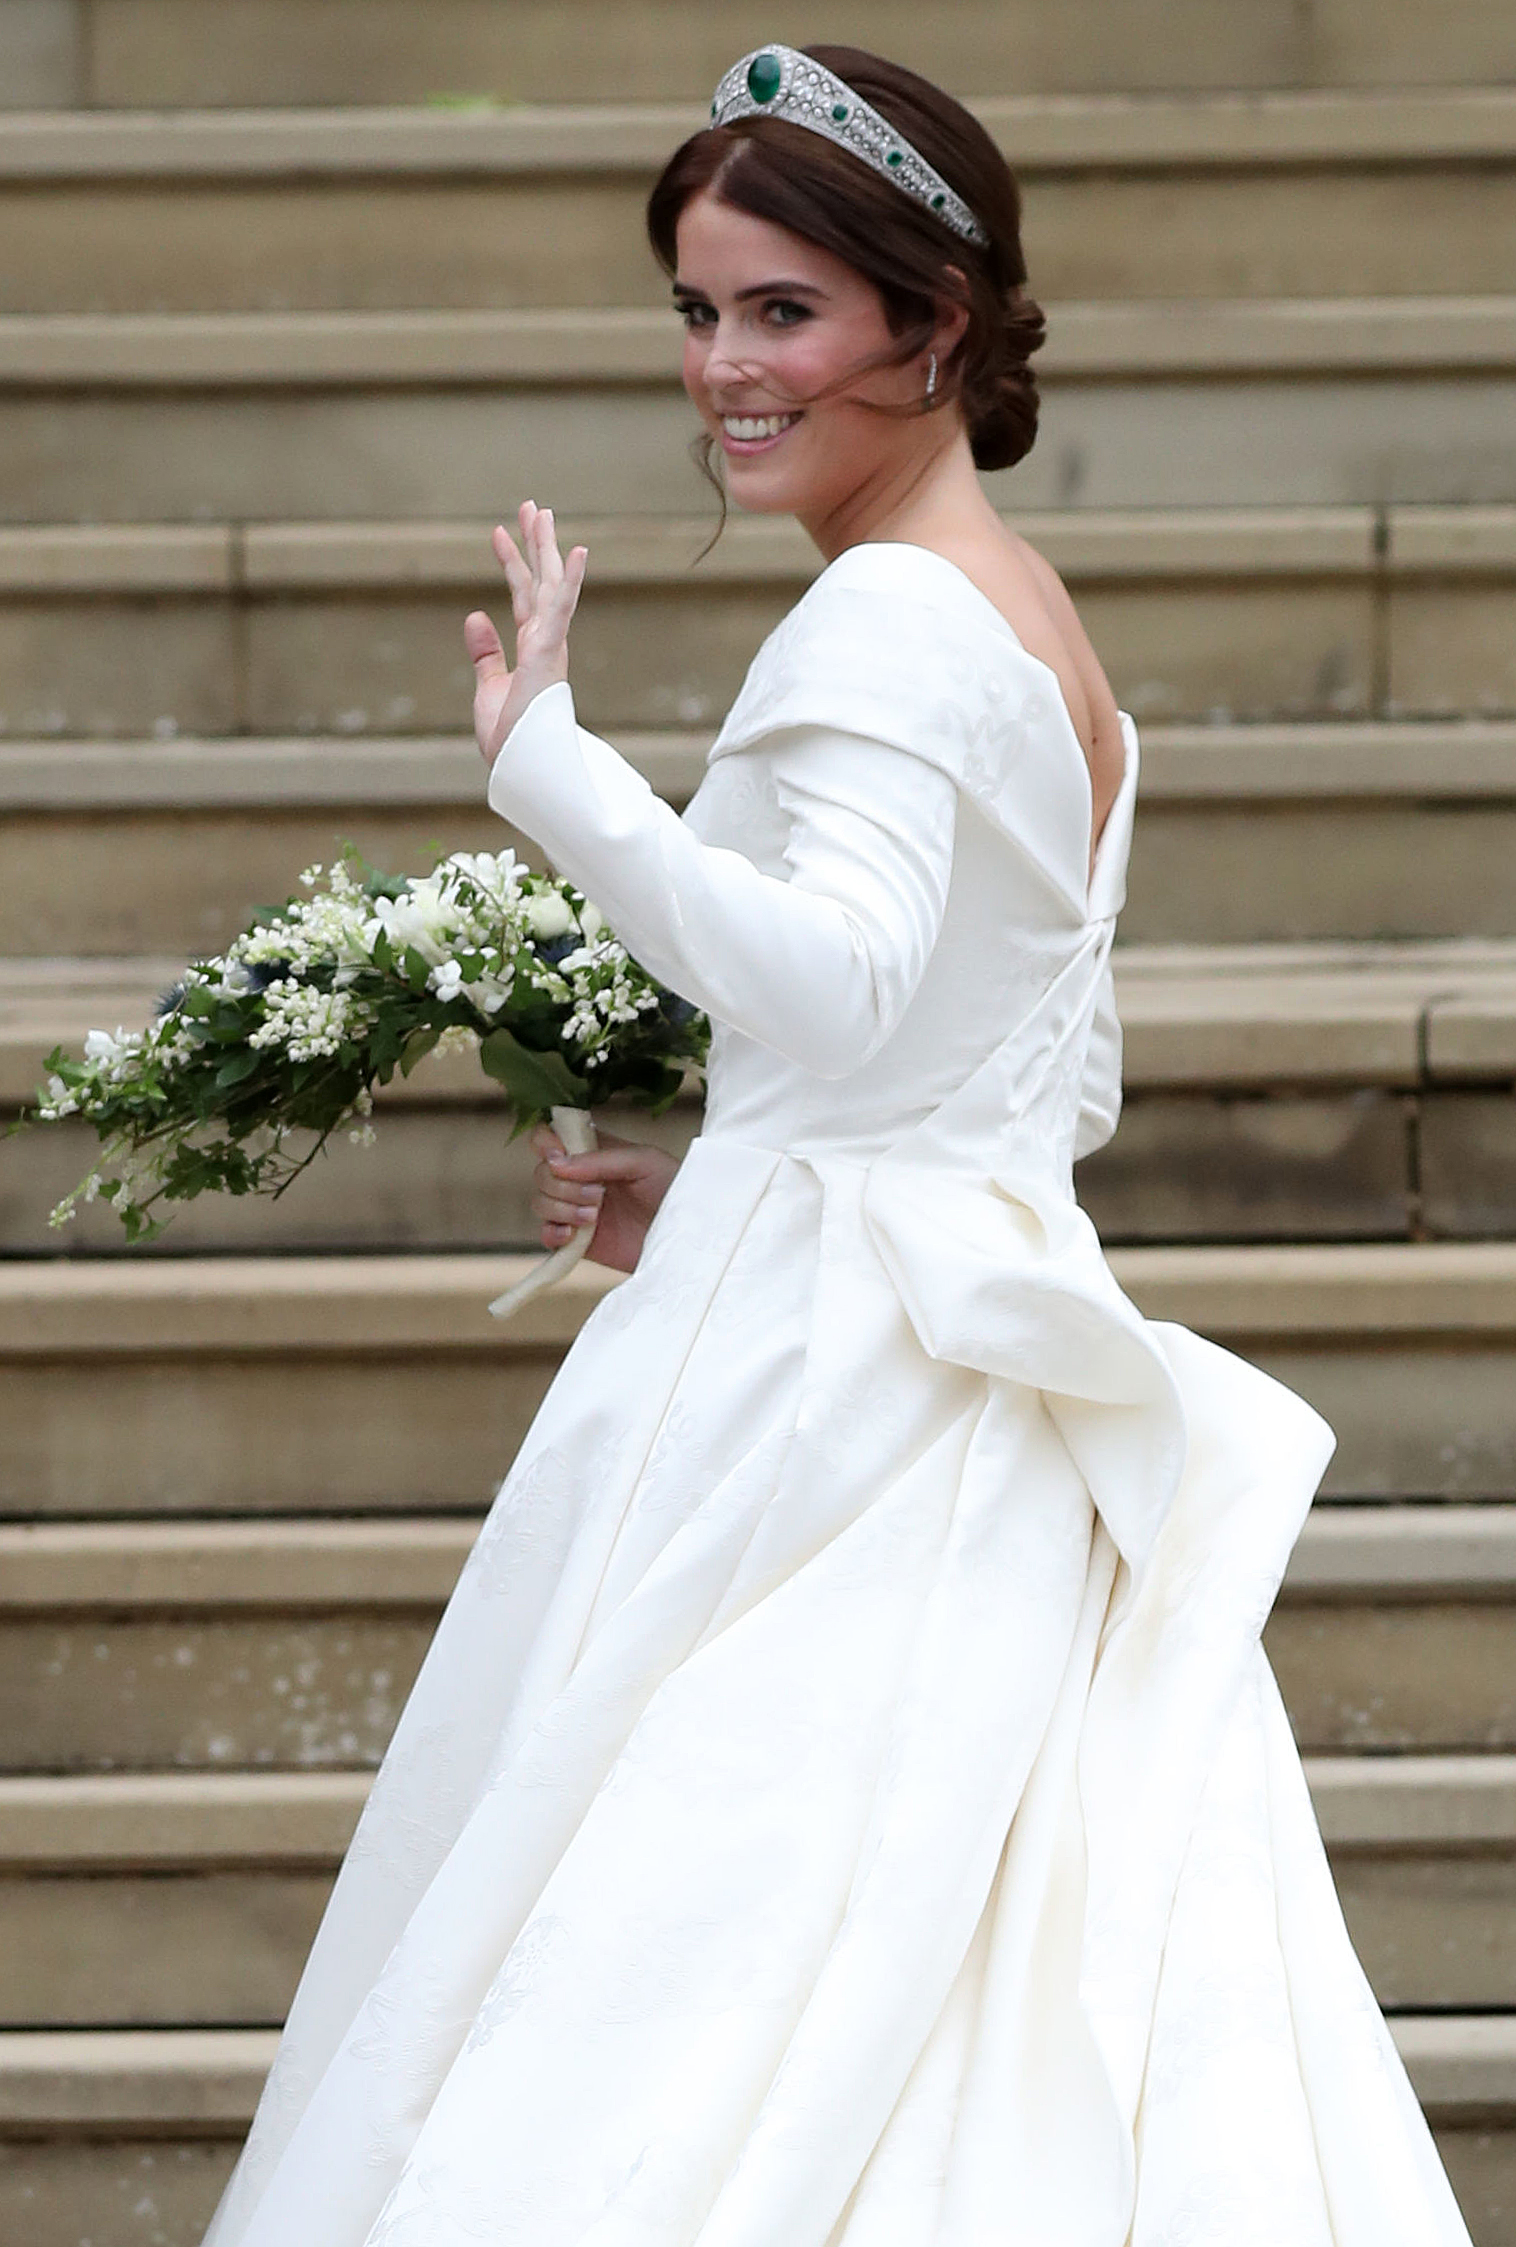 Princess Eugenie Posted a Throwback Photo That Predicted Her Wedding Look